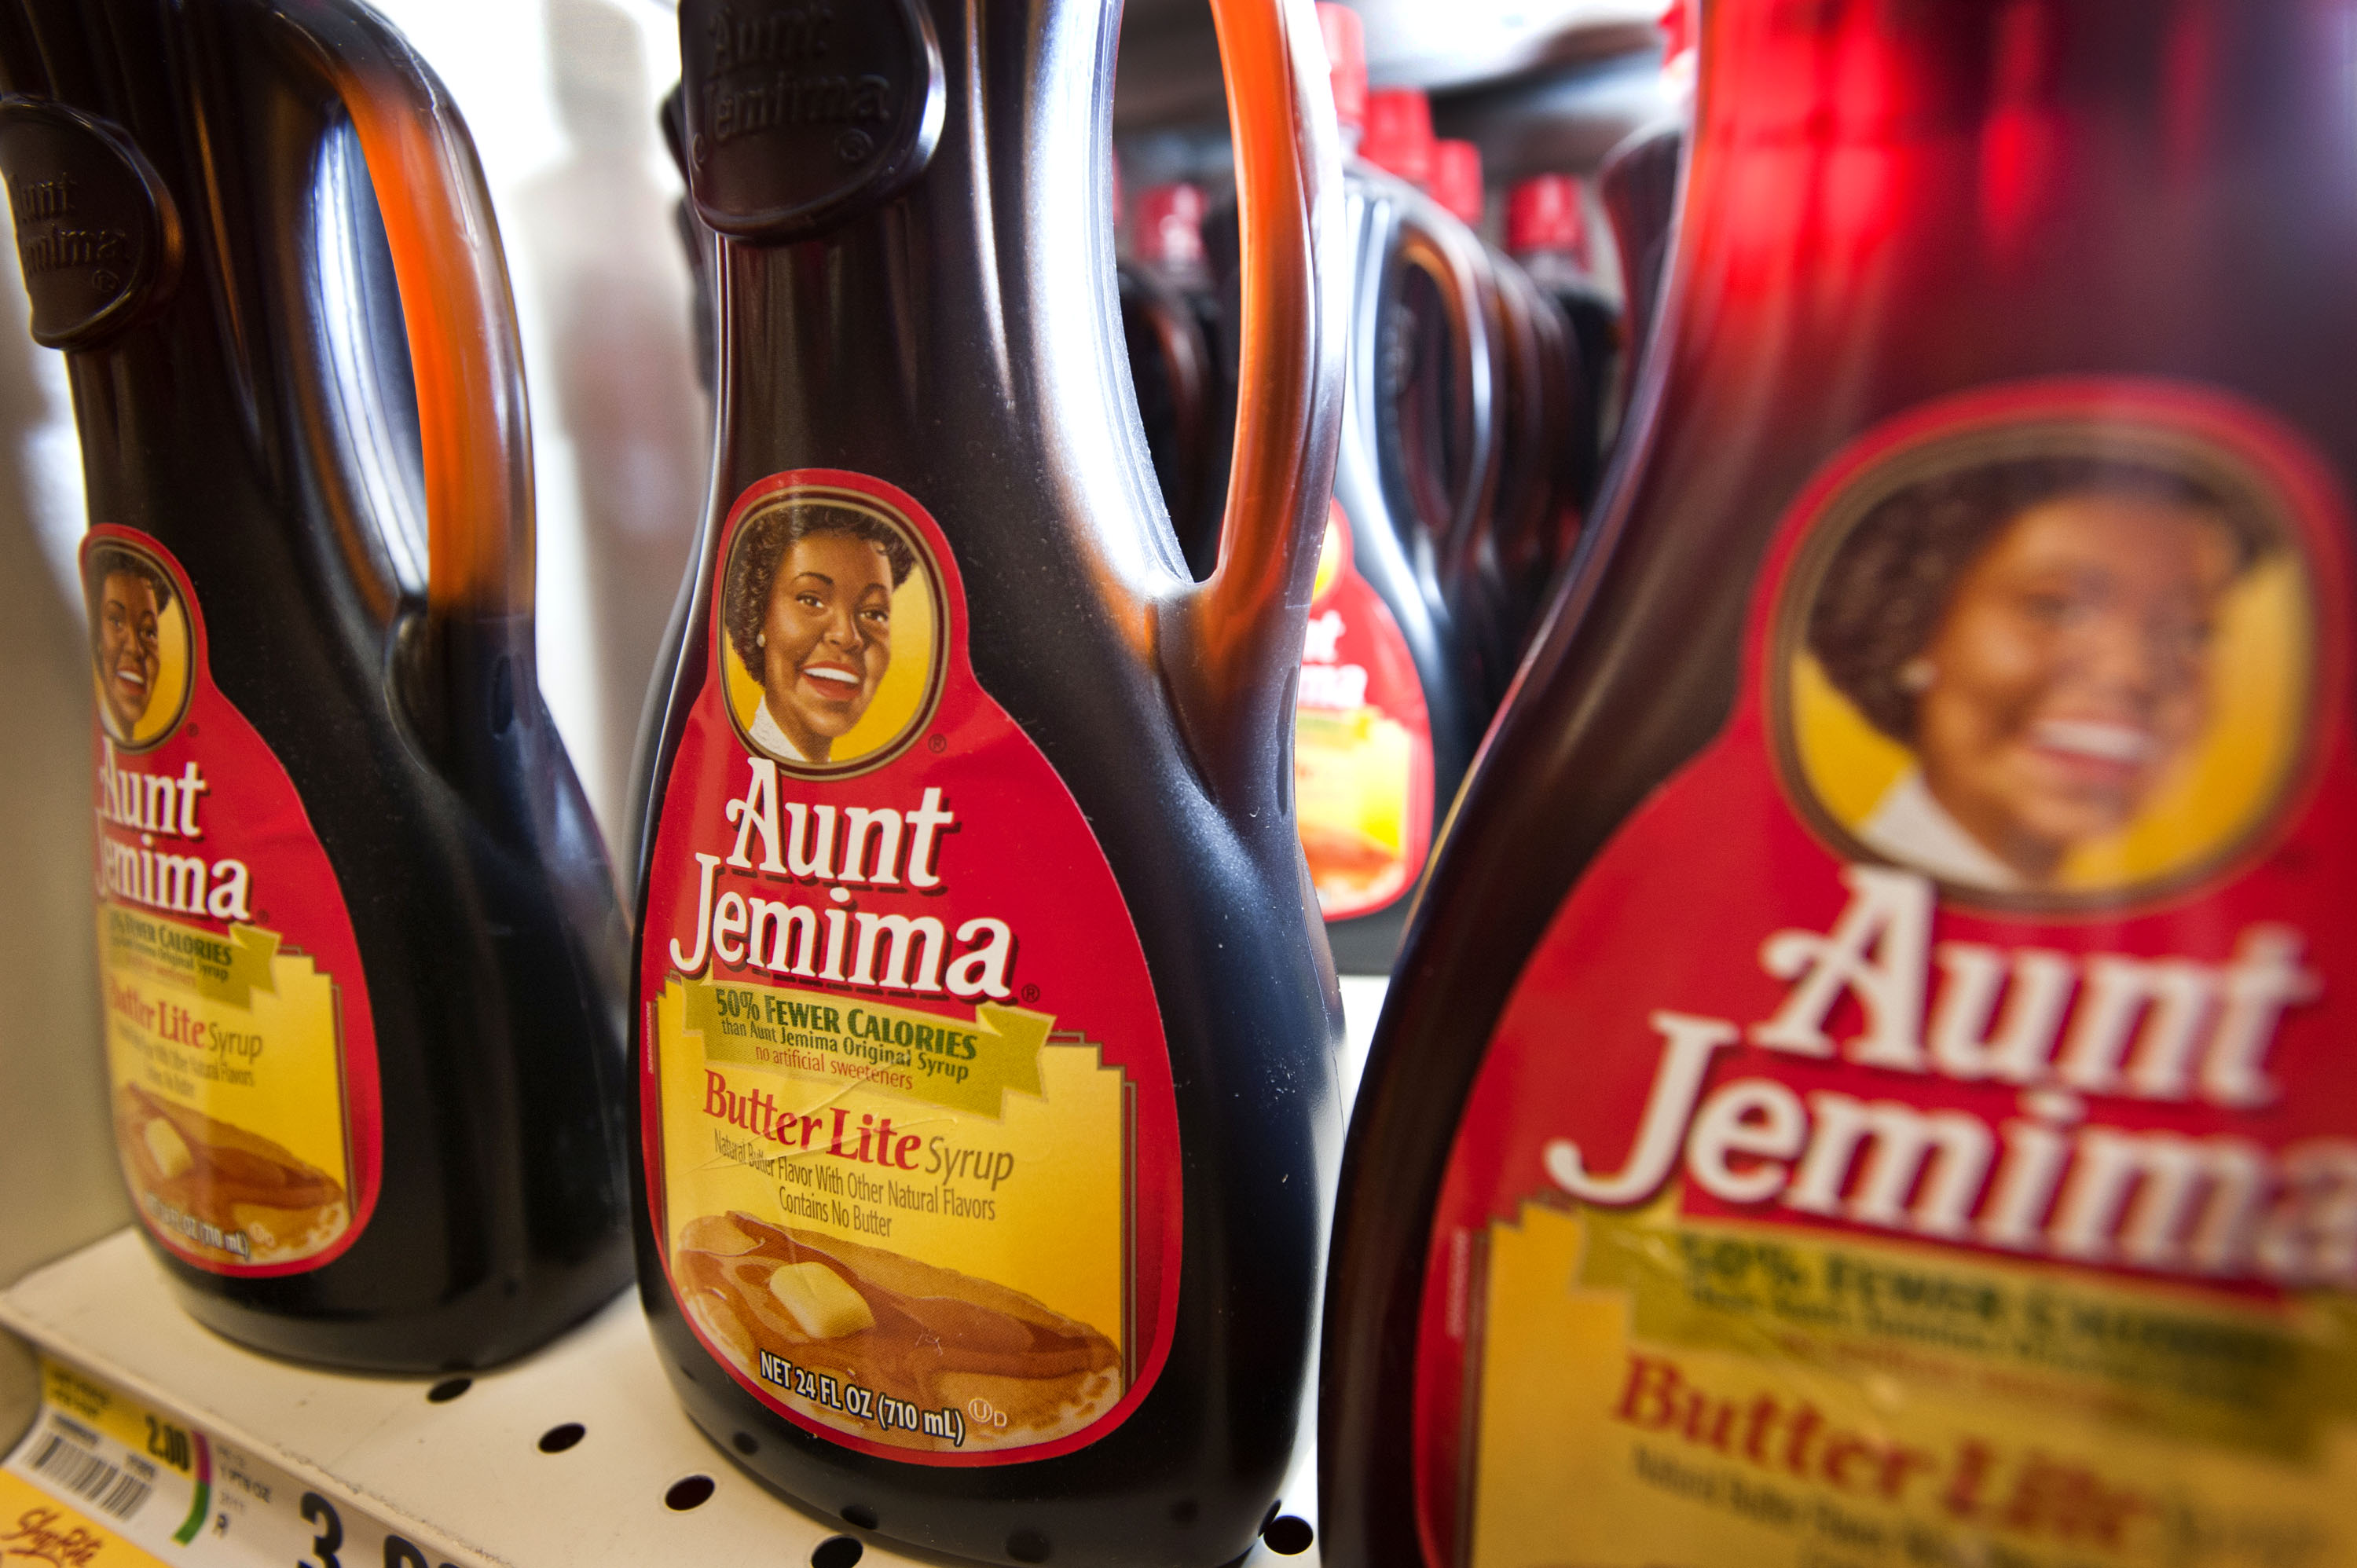 Bottles of Aunt Jemima syrup are displayed for sale at a ShopRite Holdings Ltd. grocery store in Stratford, Connecticut, on Aug. 3, 2011.